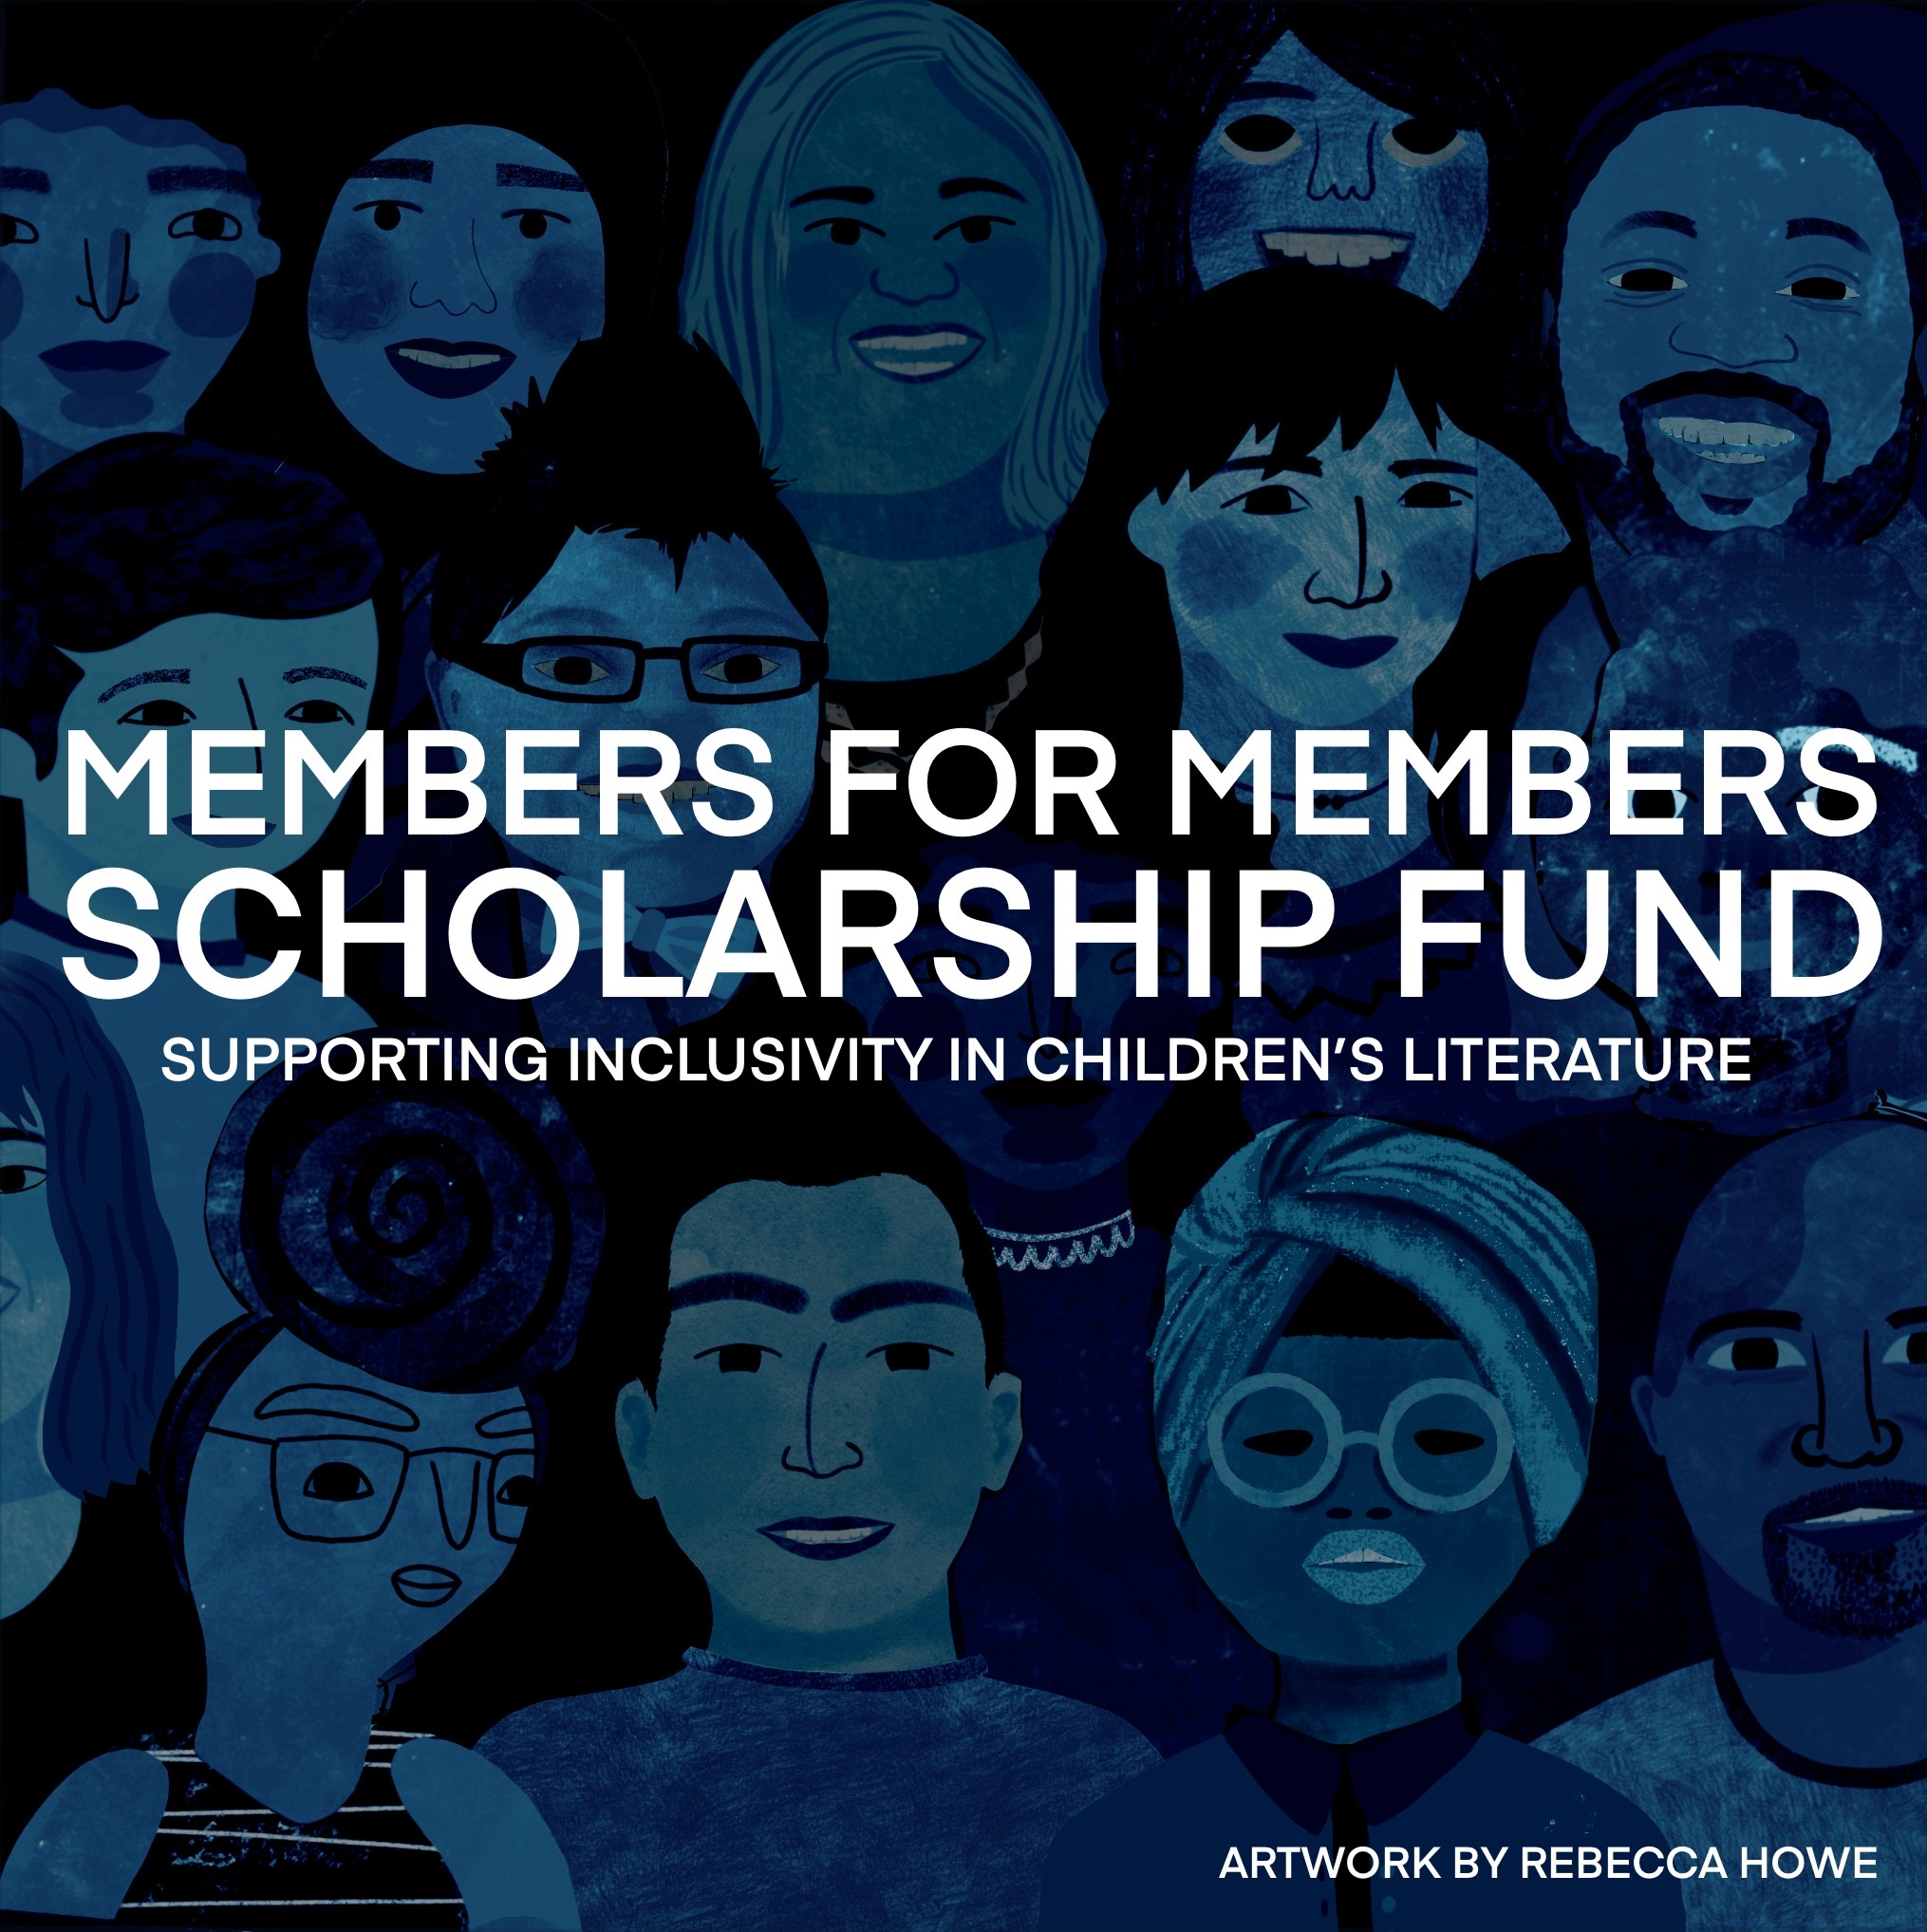 Members For Members Scholarship Fund New Extended Deadline for the Members for Members Scholarship Fund Applications This M4M scholarship will be awarded to writers and/or illustrators who are Michigan residents and who wish to become members of SCBWI or tocurrent SCBWI-Michigan members who fit the scholarship guidelines. Scholarship winnerswill receive a year's membership to SCBWI or in the case of current members,as an add-on to the current membership, OR funds may go towards an SCBWI-MI conference.  Awardees will have an interest in and are actively working toward creating children's books that resonate with diverse readers. We recognize all diverse experiences and seek applicants who promote inclusion and support underrepresented groups in children's publishing including, but not limited to, those marginalized due to race/ethnicity, disability, sexual orientation, gender and gender identity, socioeconomic status, geography, citizenship, and religion. The scholarship will offset the cost of an annual membership in SCBWI (which includes membership in SCBWI-Michigan and iscurrently $80.00 for full membership and $65.00 for student membership) or may be applied towards an SCBWI-MI conference. This grant is sponsored by donations from current SCBWI-Michigan members. The number of awards will be determined by donations to this scholarship fund. Extended Deadline: Submissions are openthrough June 1, 2021. The winner(s) of the scholarships will be announced on or about June 15.  Guidelines: This award is open to persons who live in Michigan. Please collect the following information in the body of an email: 1.)Full name and contact information: mailing address, email address, social media handles, and phone number. Indicate if you are a current SCBWI member. 2.)Provide a brief description about works-in-progress or those in the planning stages and how your WIP meets the criteria established above. 3.)Include a statement about why you want to become a member of SCBWI.What